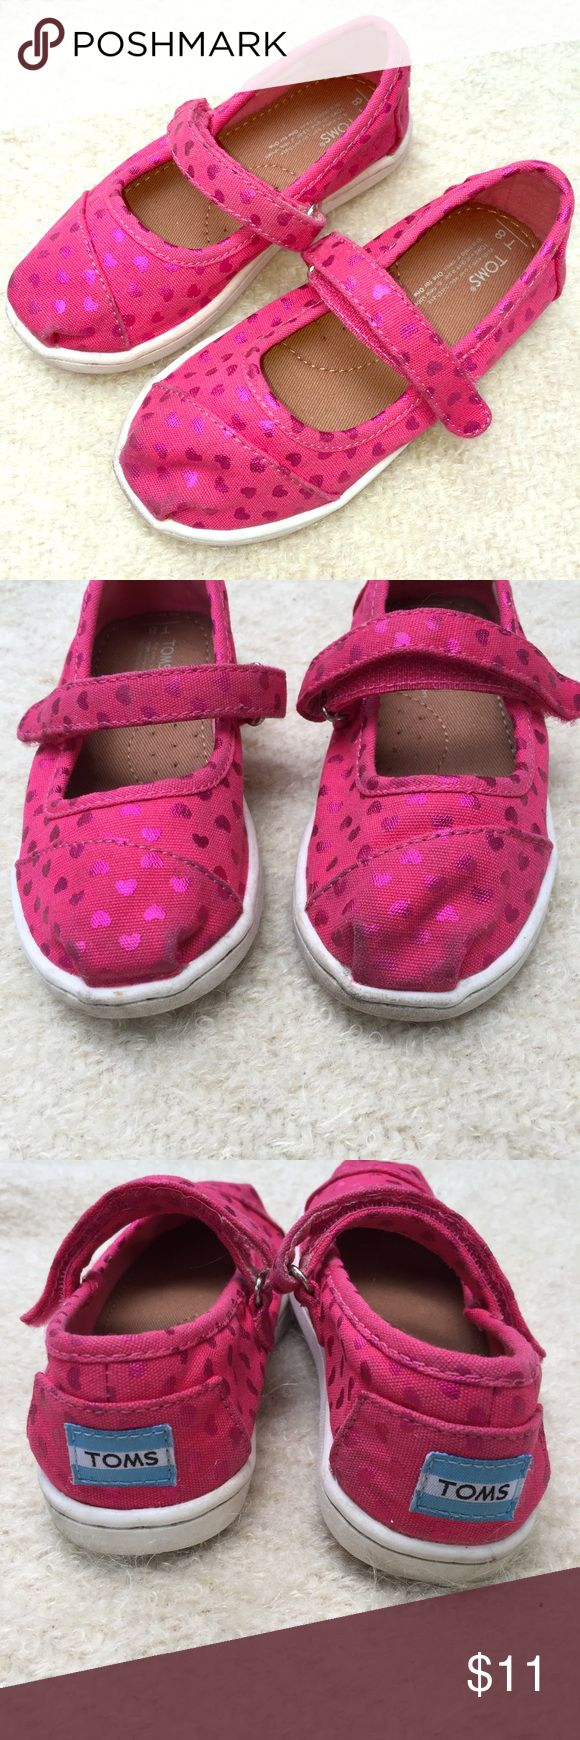 TOMS kids shoes Adorable Velcro TOMS brand kids shoes. Size 8. Pre-loved, but sturdy and super cute! Add to a bundle to receive a private discount offer with no obligation to buy. 🚫NO TRADES Toms Shoes